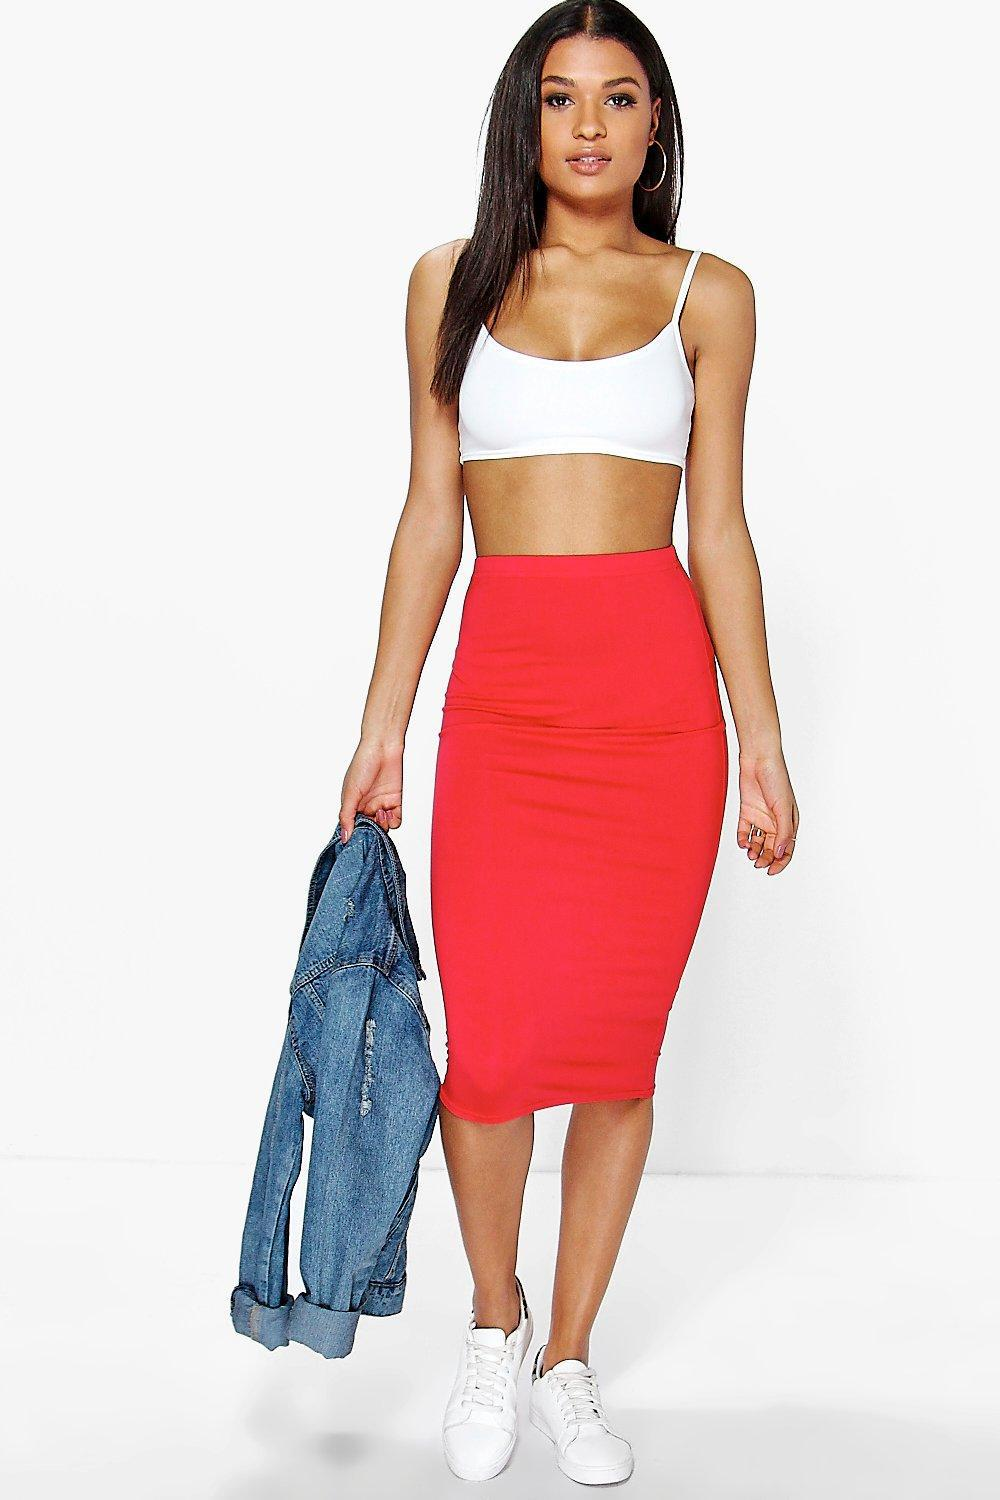 Boohoo Synthetic Alexis Basic Jersey Midi Skirt in Red   Lyst